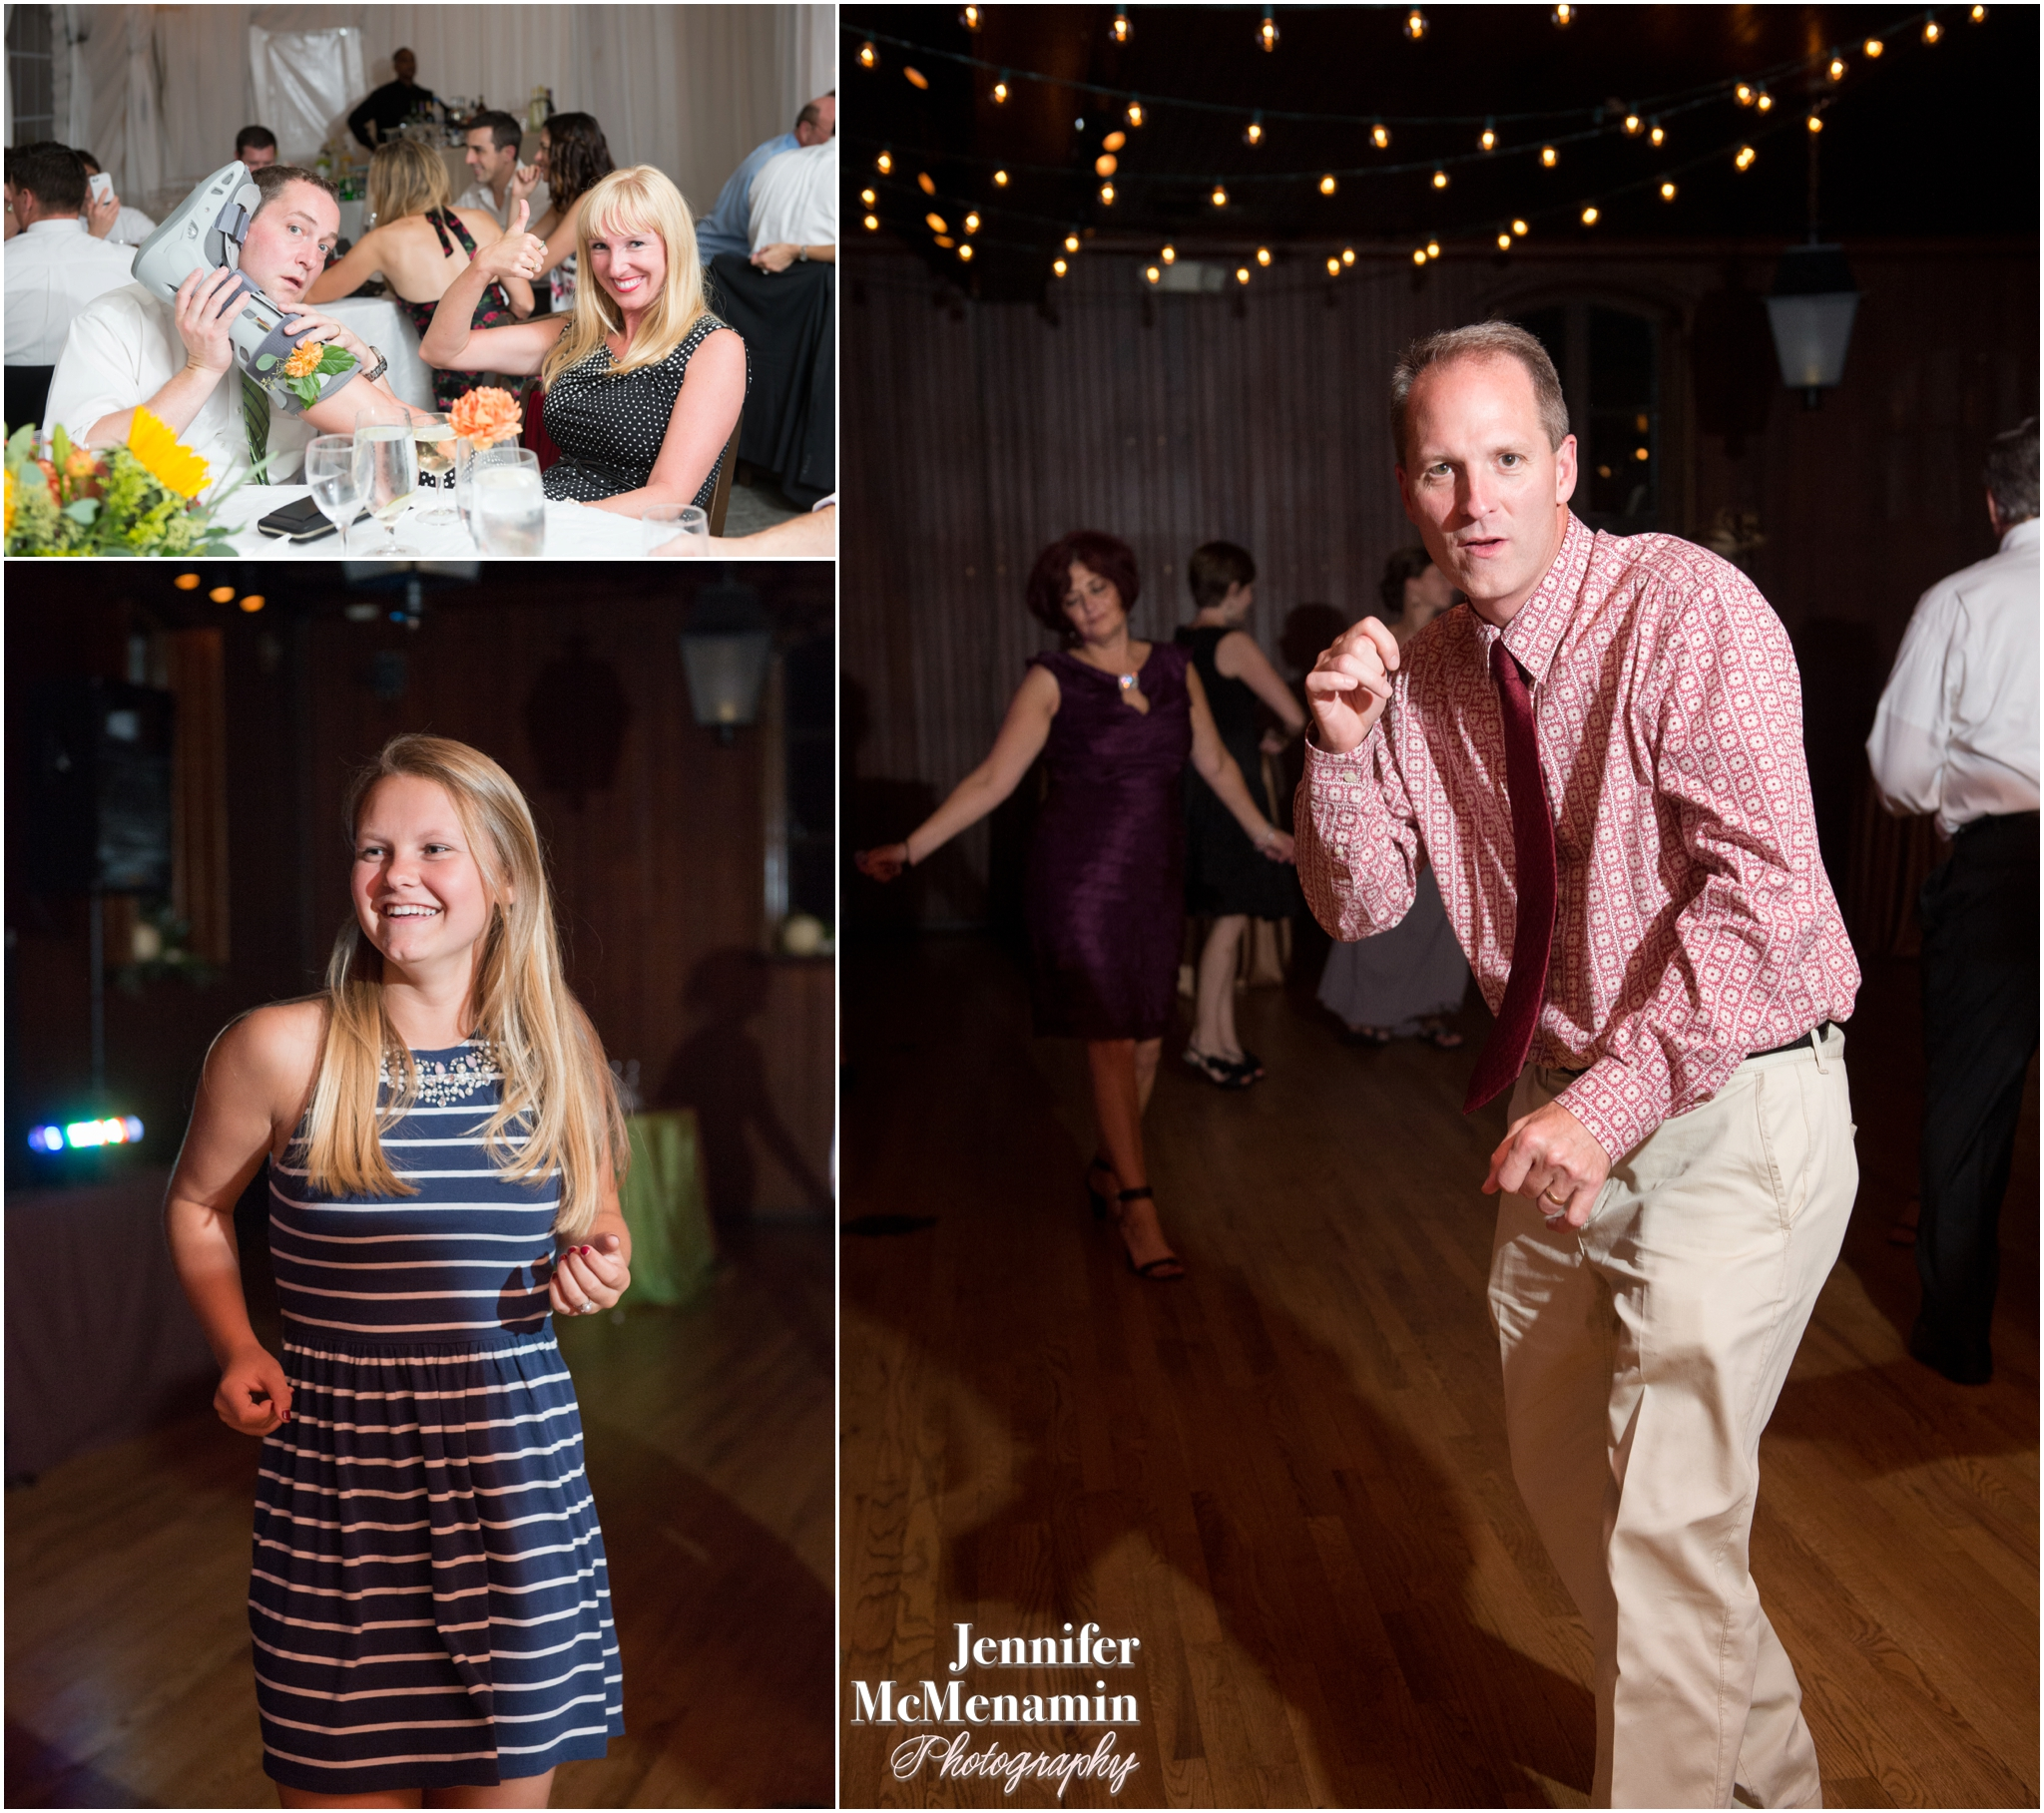 097-HenningMiller_03504-0788_JenniferMcMenaminPhotography_Evergreen-Museum-And-Carriage-House_Evergreen-wedding_Baltimore-wedding-photographer_Baltimore-wedding-photography